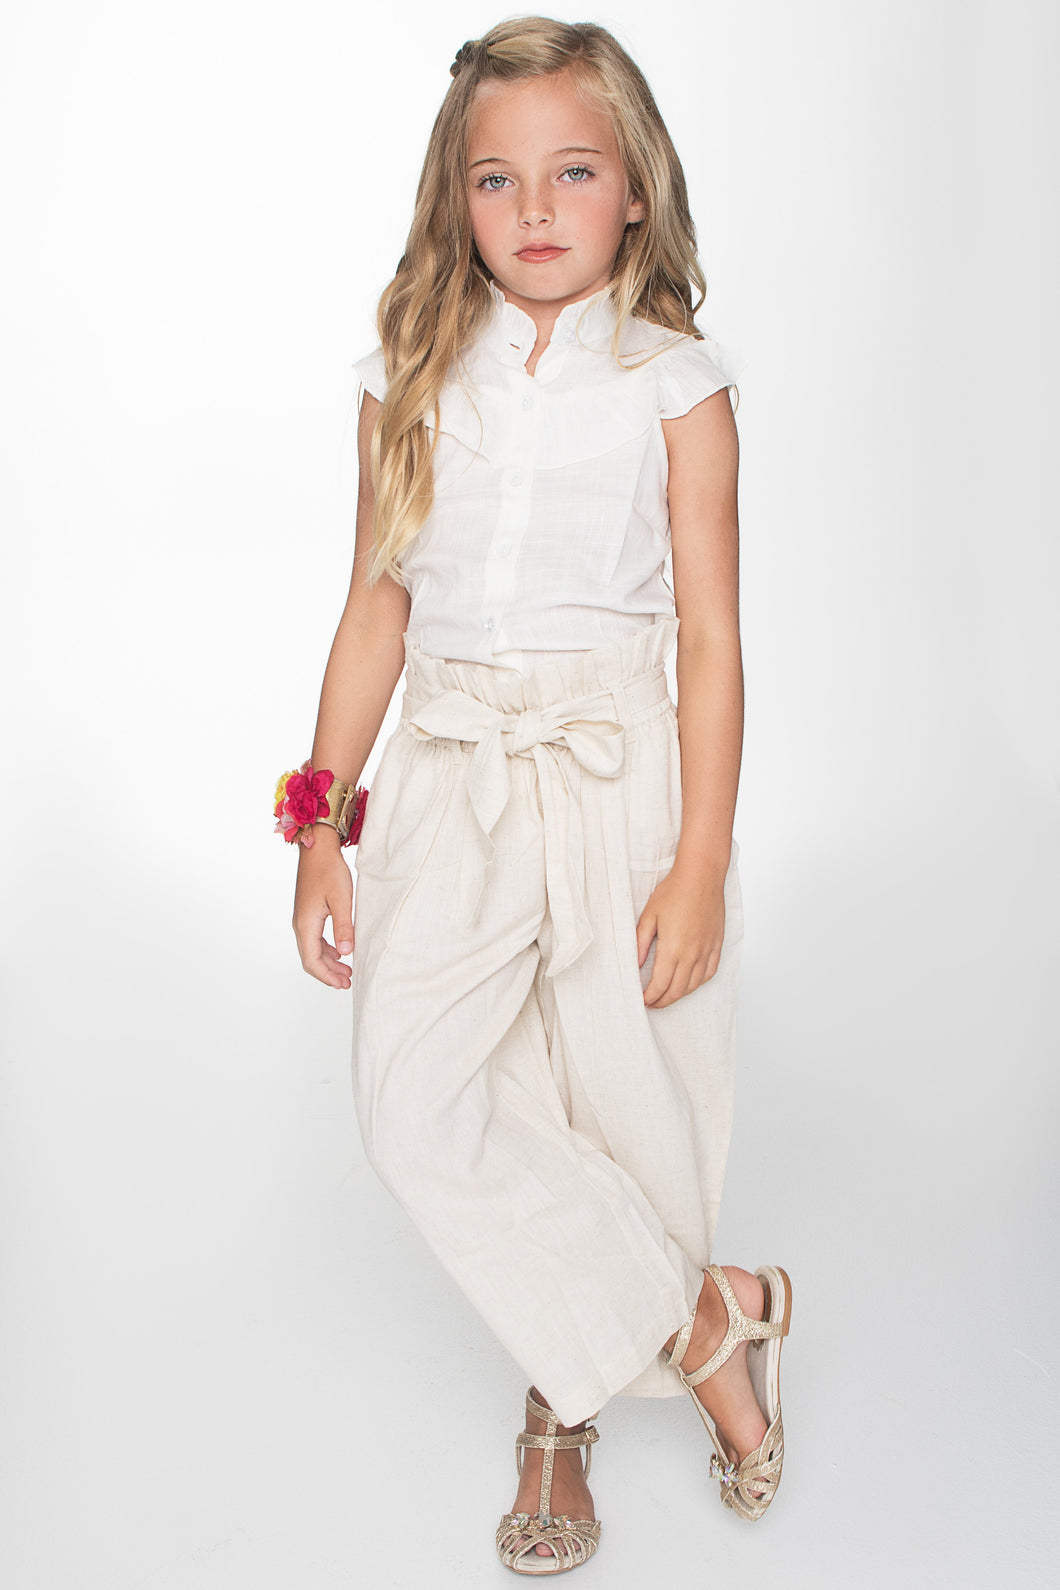 White Frill Top and Paper Bag Beige Pants 2pc. Set - Kids Clothing, Dress - Girls Dress, Yo Baby Online - Yo Baby